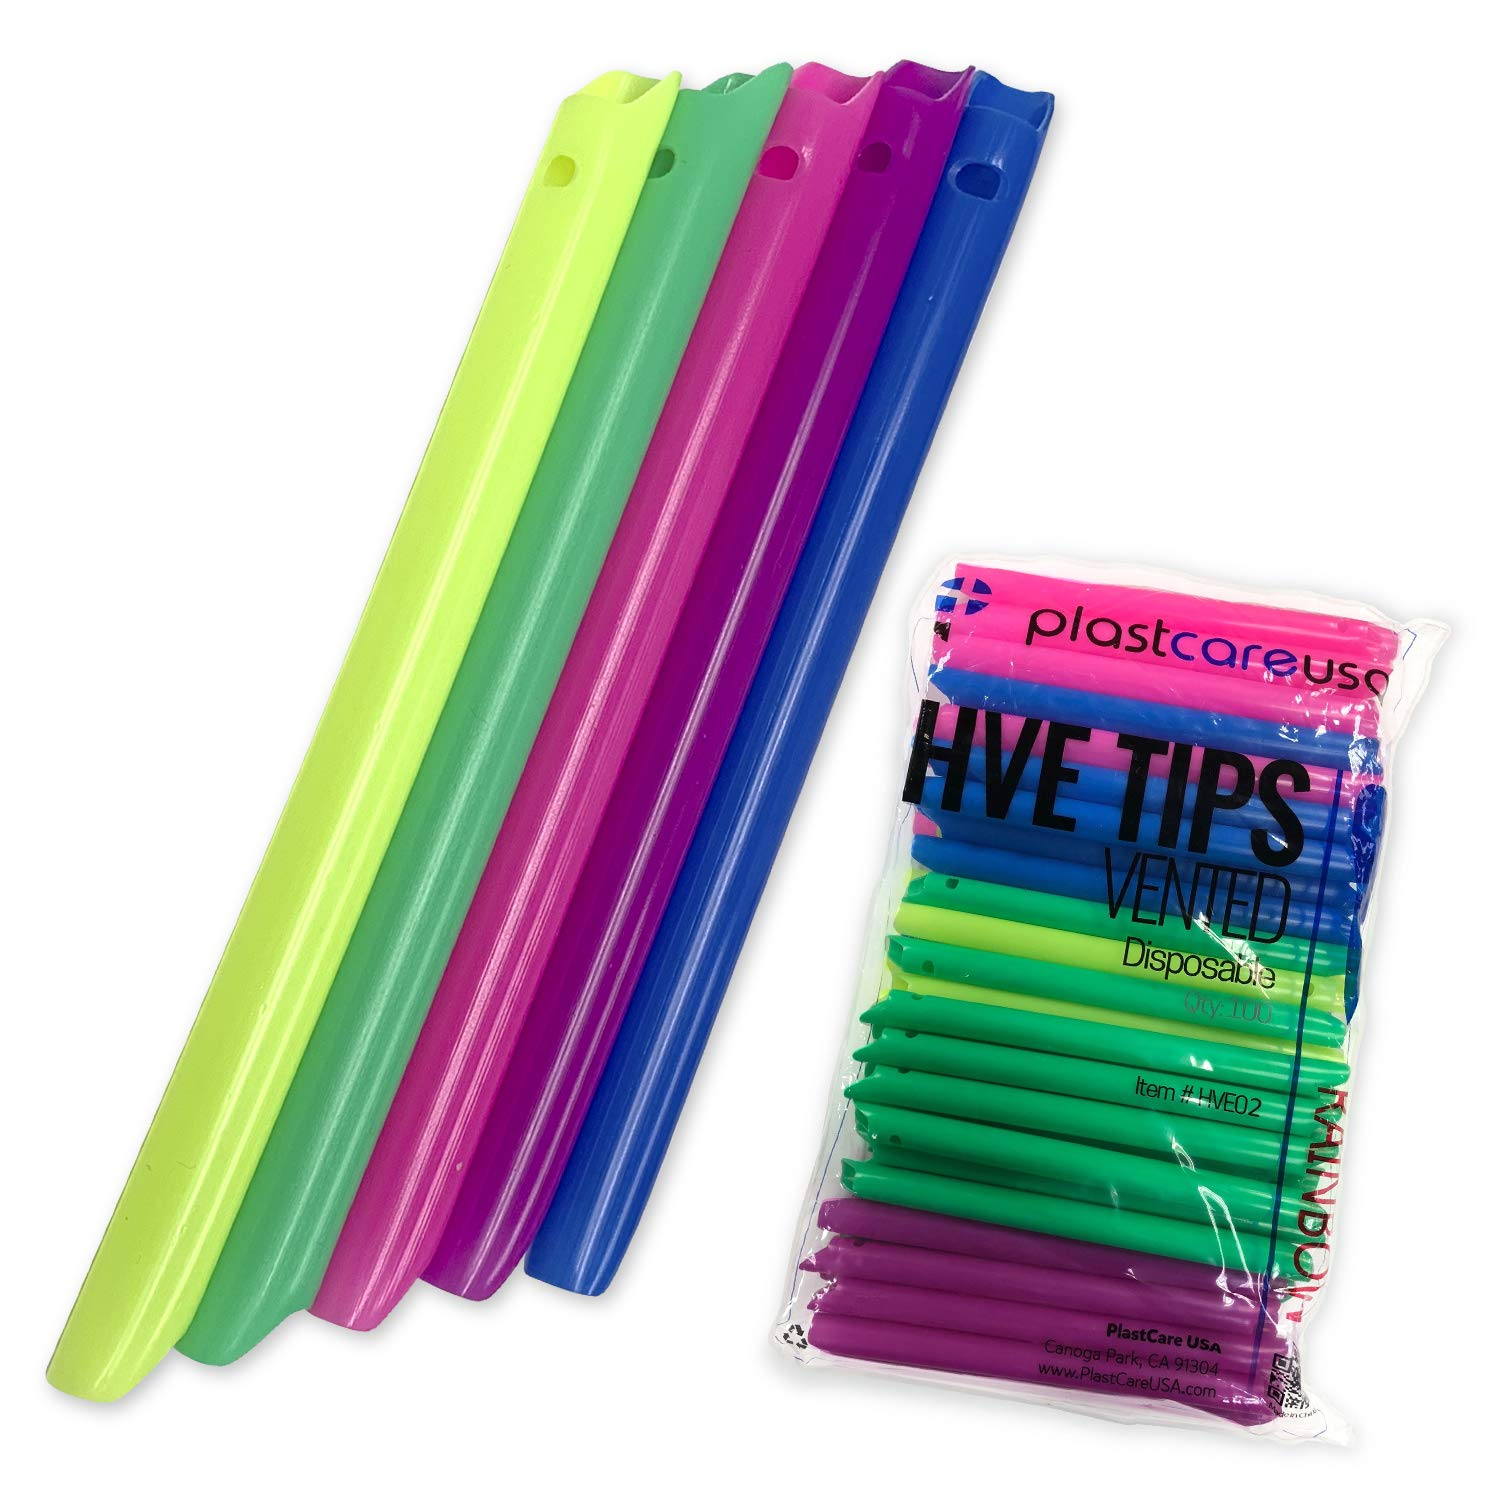 1000 HVE Rainbow Assorted Evacuation Suction Dental Tips, Vented, 10 Bags